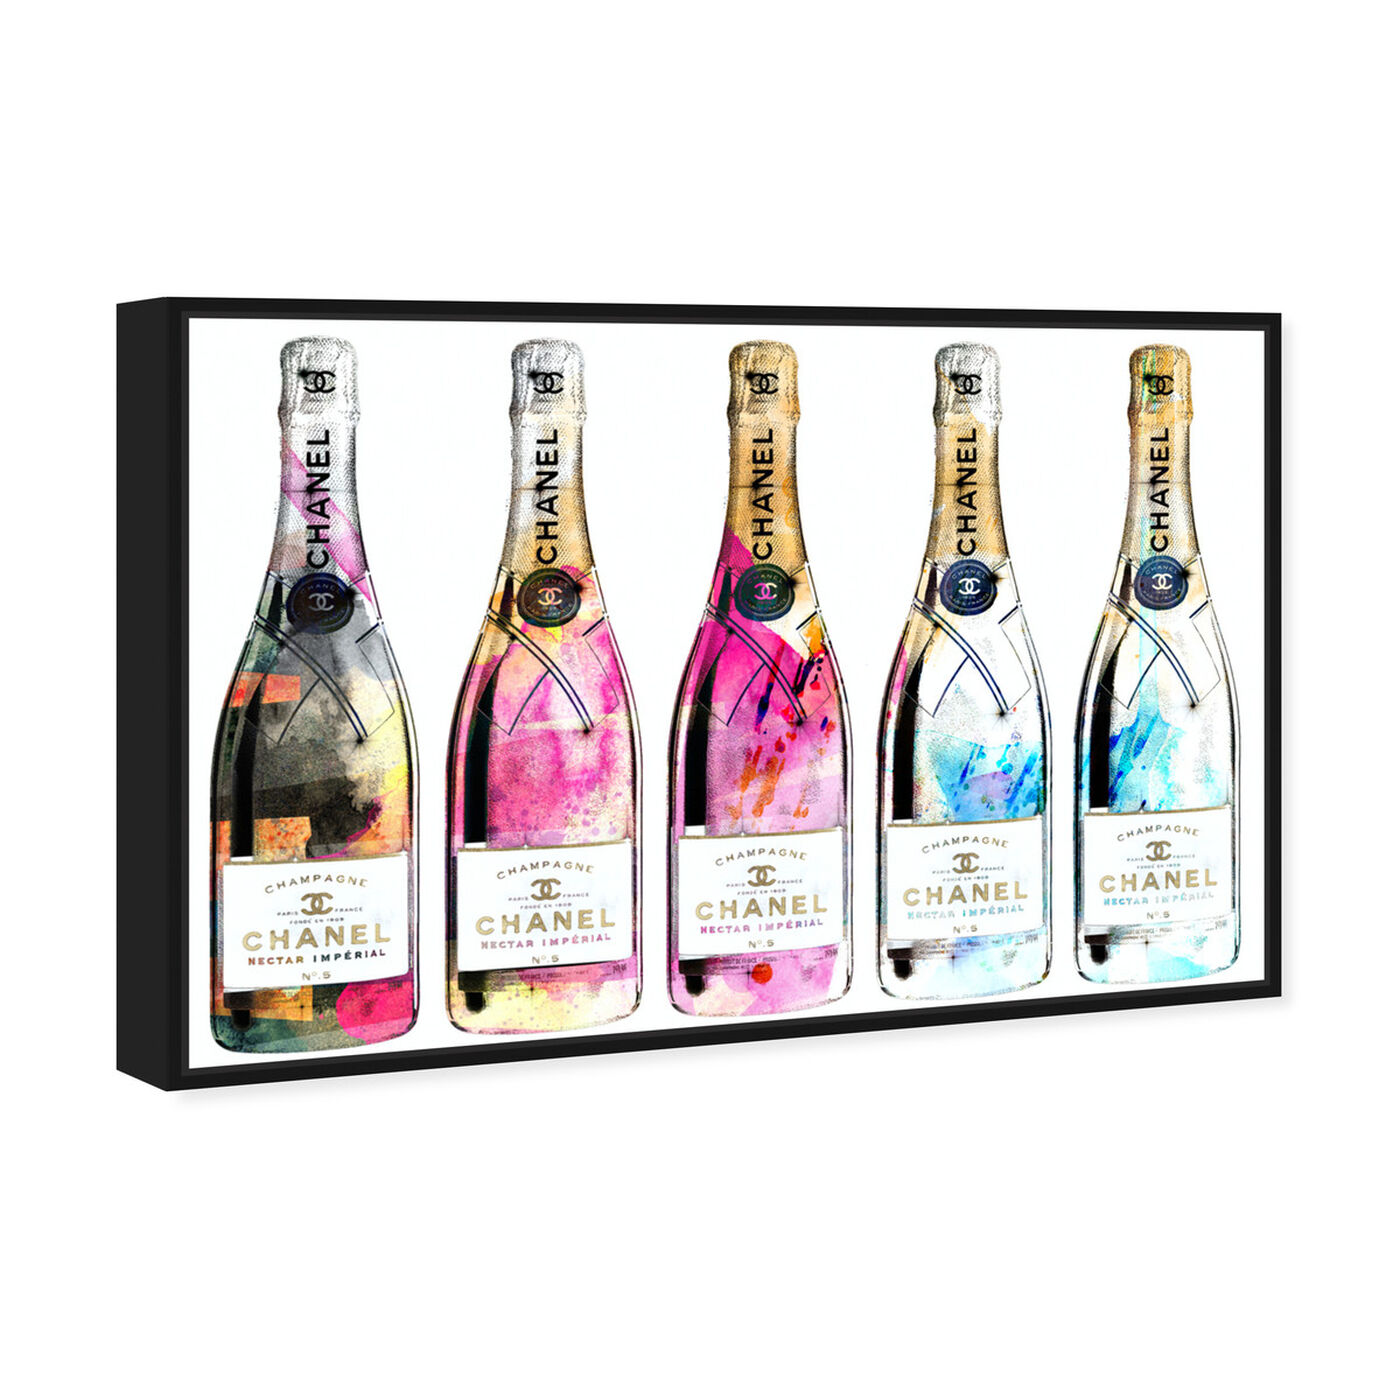 Angled view of Drink Up Champagne featuring fashion and glam and lifestyle art.